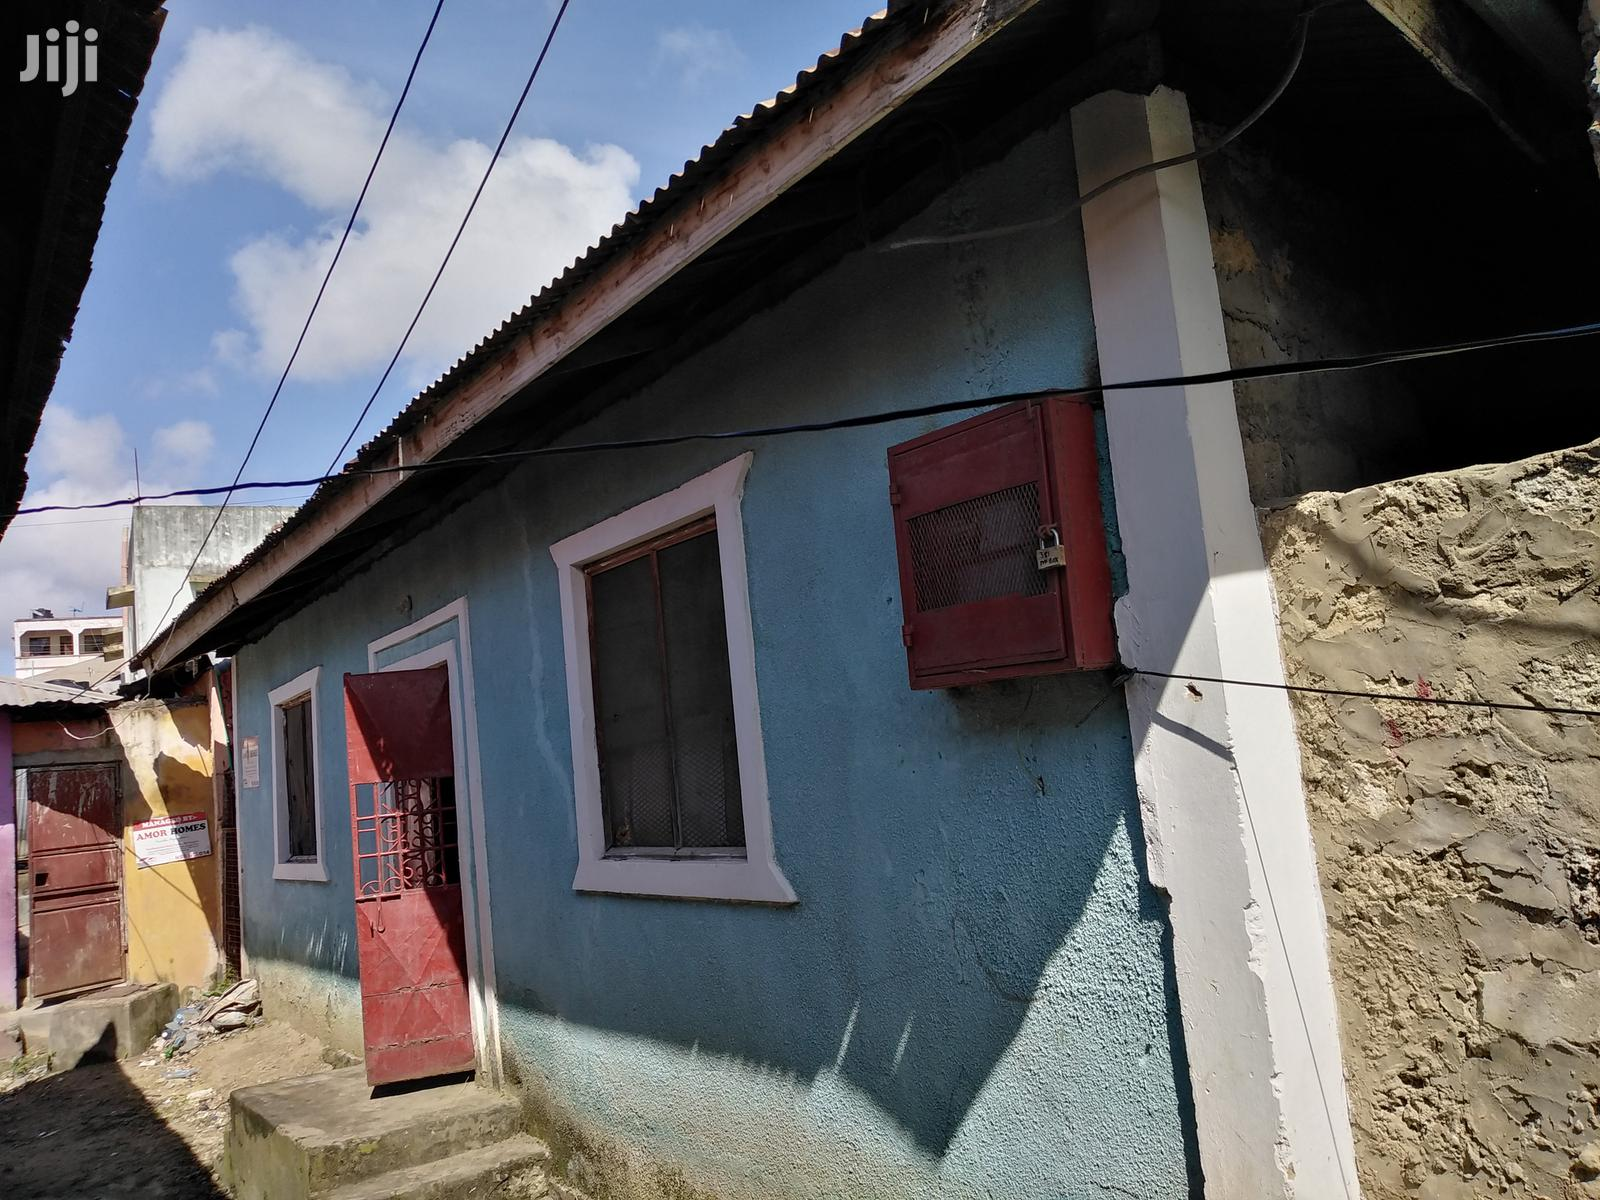 Single Room To Let At Mwandoni-kcb(Ref: Hse 381)   Houses & Apartments For Rent for sale in Kisauni, Mombasa, Kenya